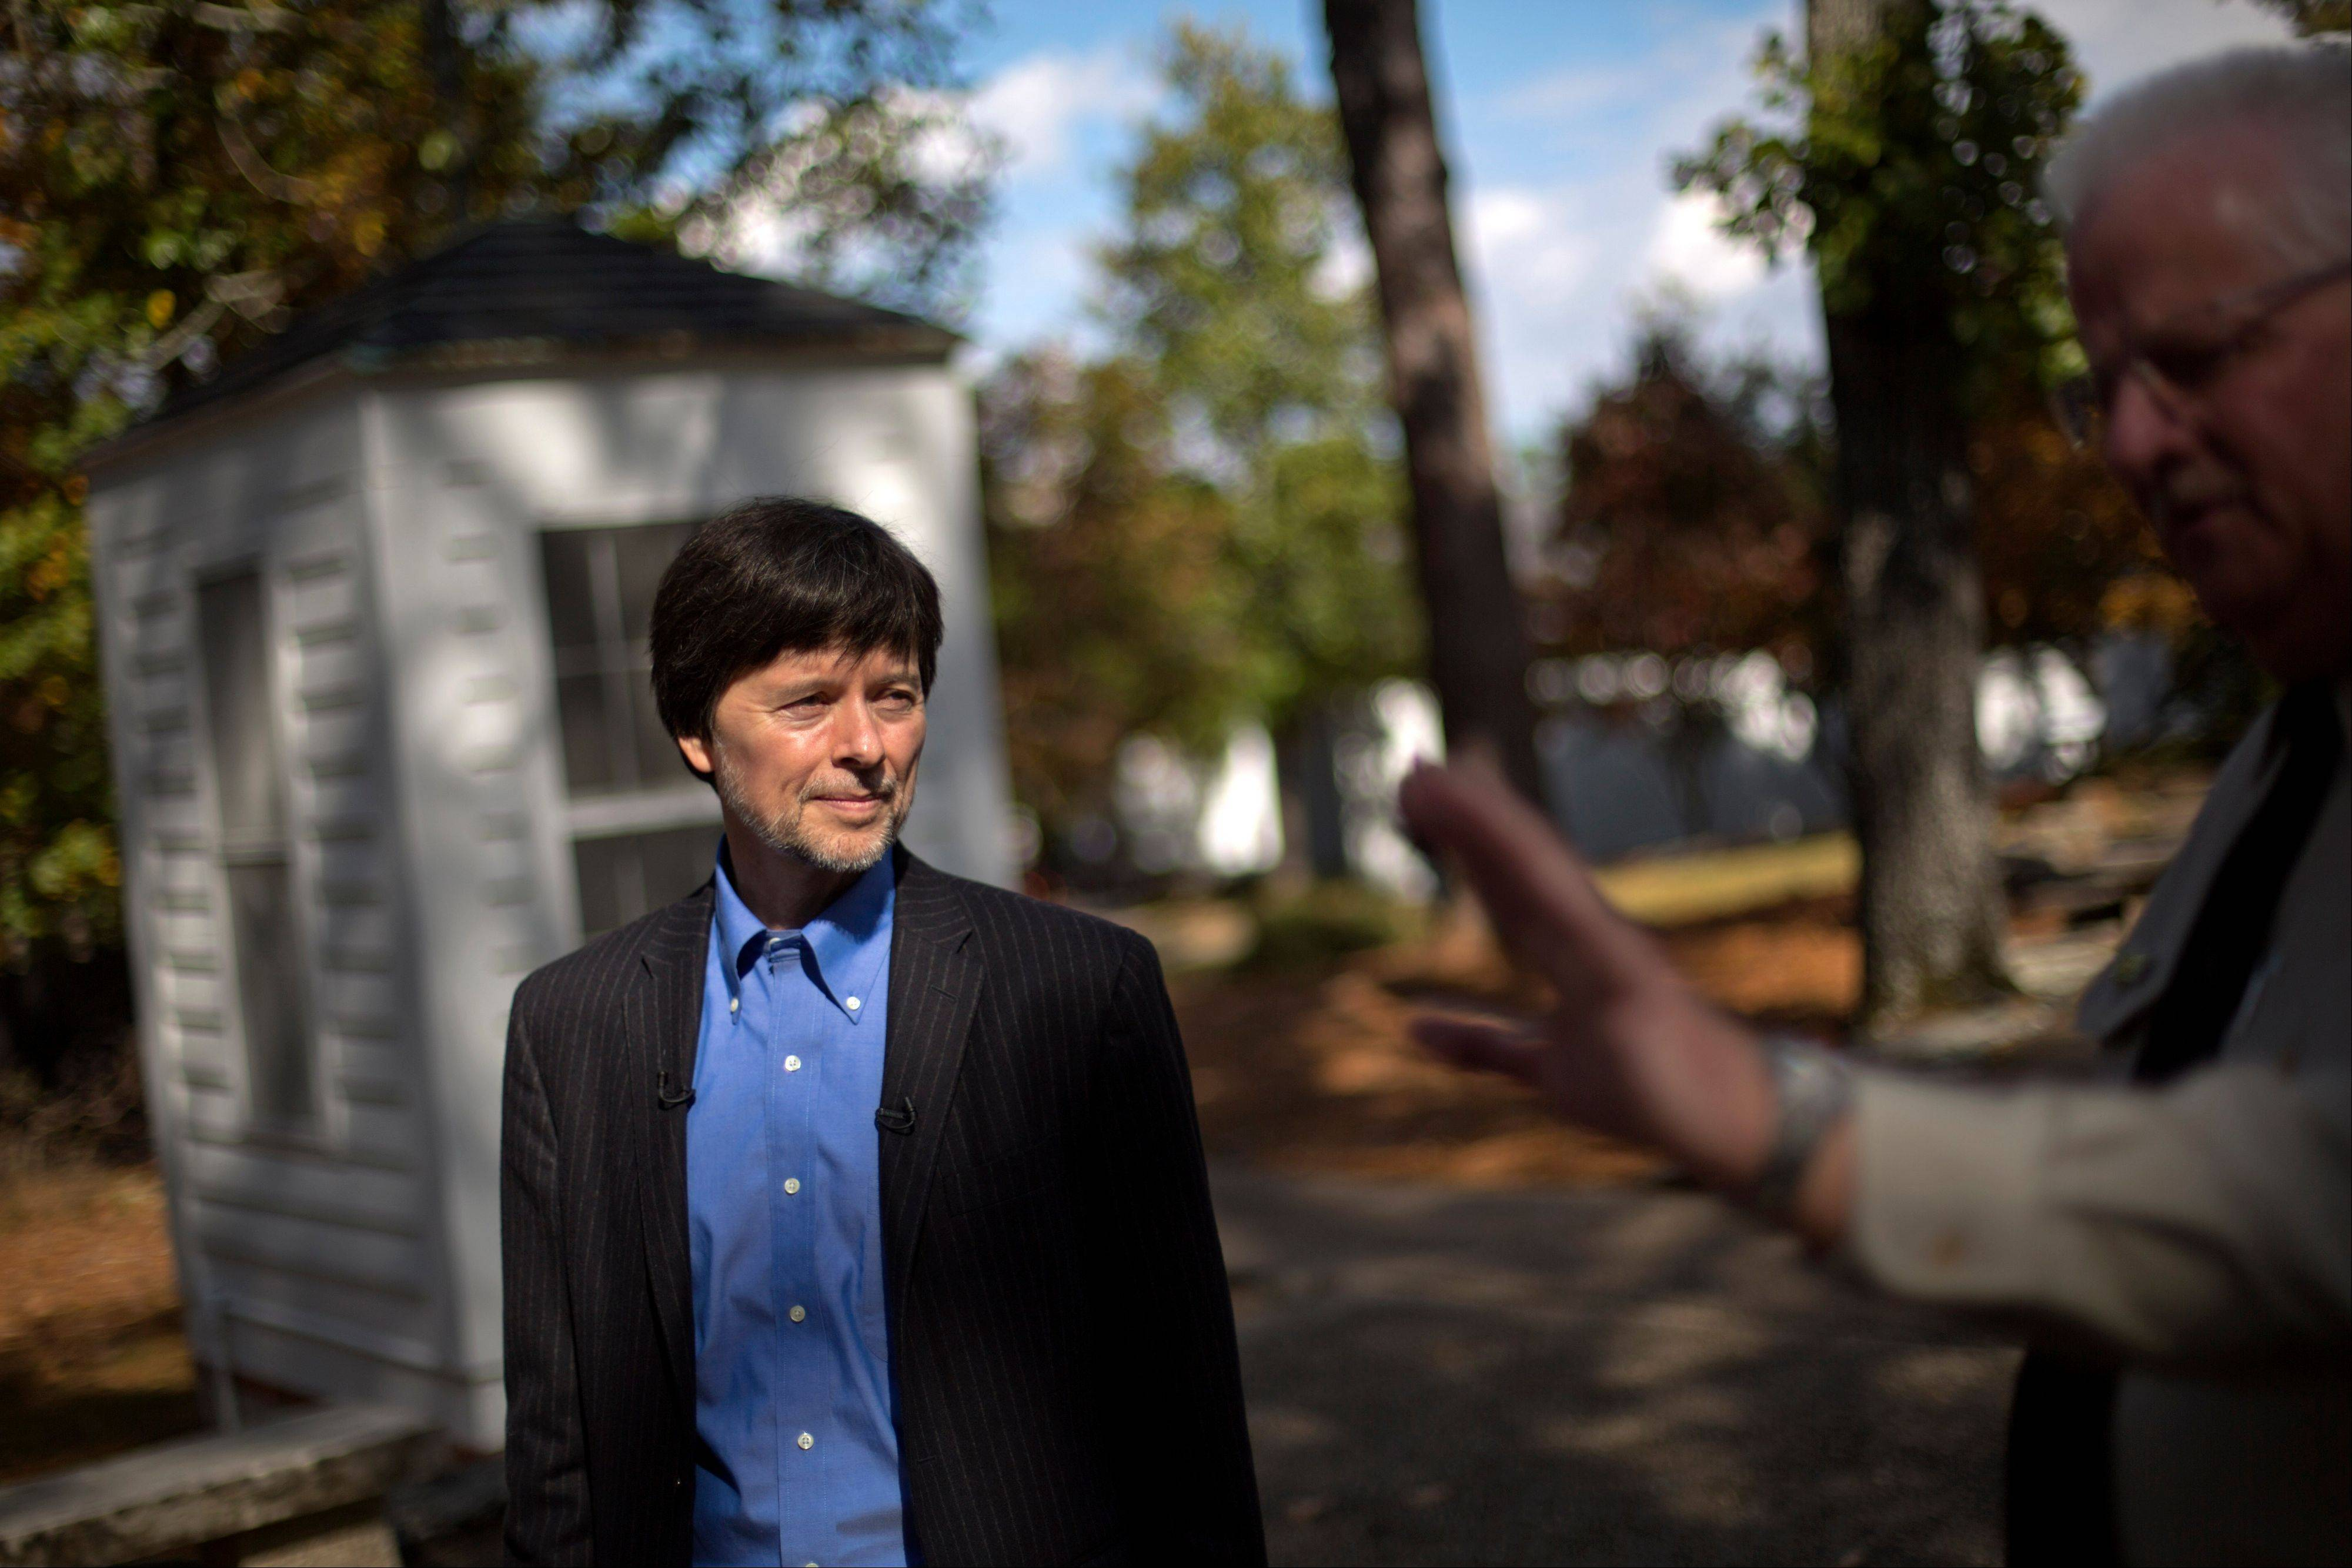 Documentary filmmaker Ken Burns walks through the entrance of the Georgia home used by former President Franklin D. Roosevelt during a tour by site manager Robin Glass, right, Saturday, in Warm Springs, Ga. Burns along with several members of the Roosevelt family toured the home known as the Little White House Saturday used by Roosevelt as Burns previewed parts of his 14-hour film on the Roosevelt's.